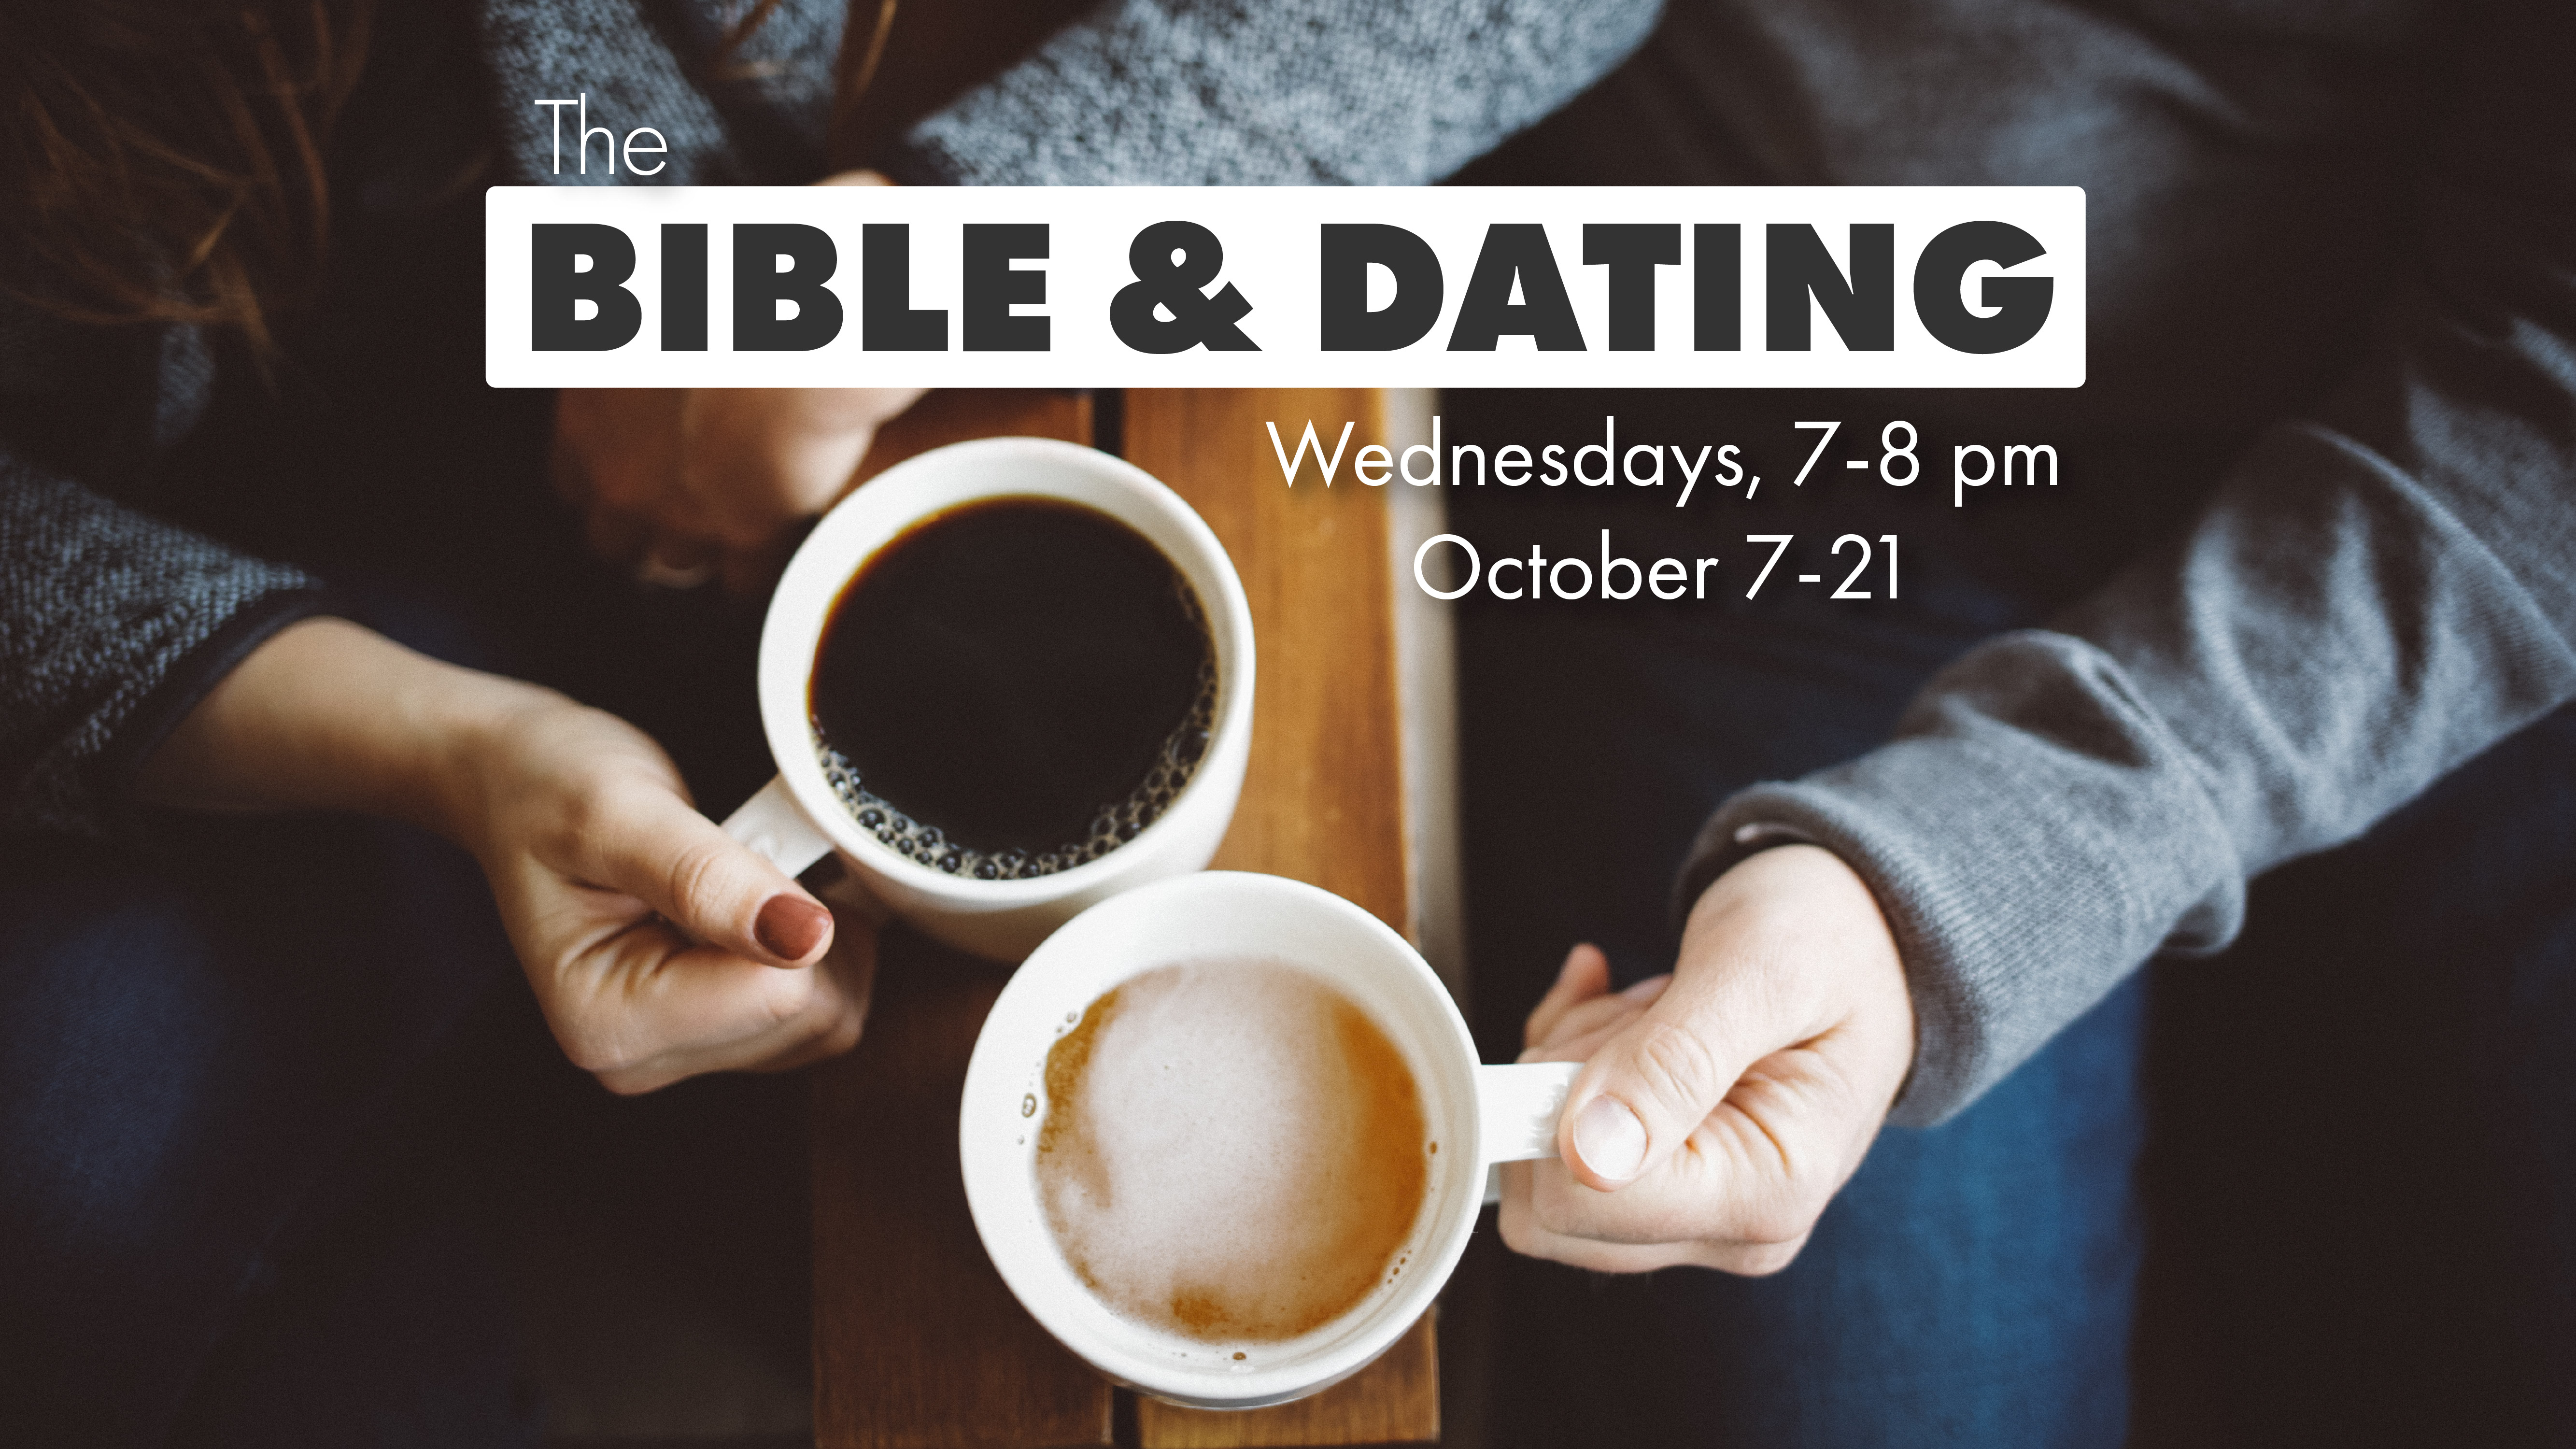 """A graphic showing that the title of the series is """"The Bible and Dating"""" and it is taking place on Wednesdays from 7-8 pm October 7th -21st. This information is laid over an aerial photo of two coffee cups being held by a woman's hand and a man's hand."""